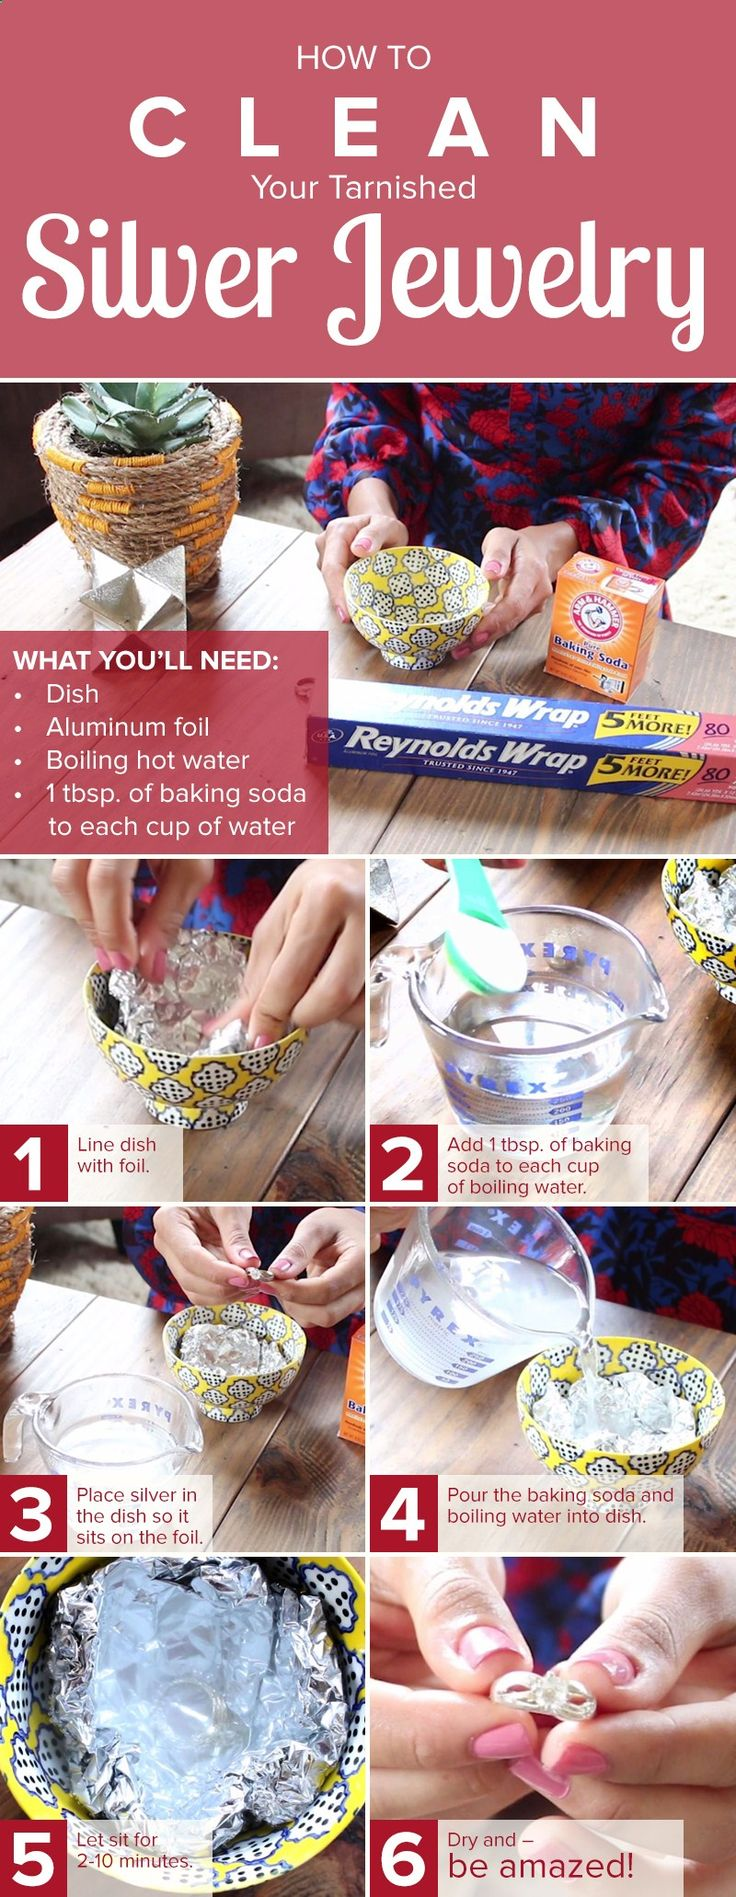 Make a homemade DIY jewelry cleaner to remove tarnish on your favorite silver necklaces, bracelets, earrings and rings. All you need are baking soda and water.